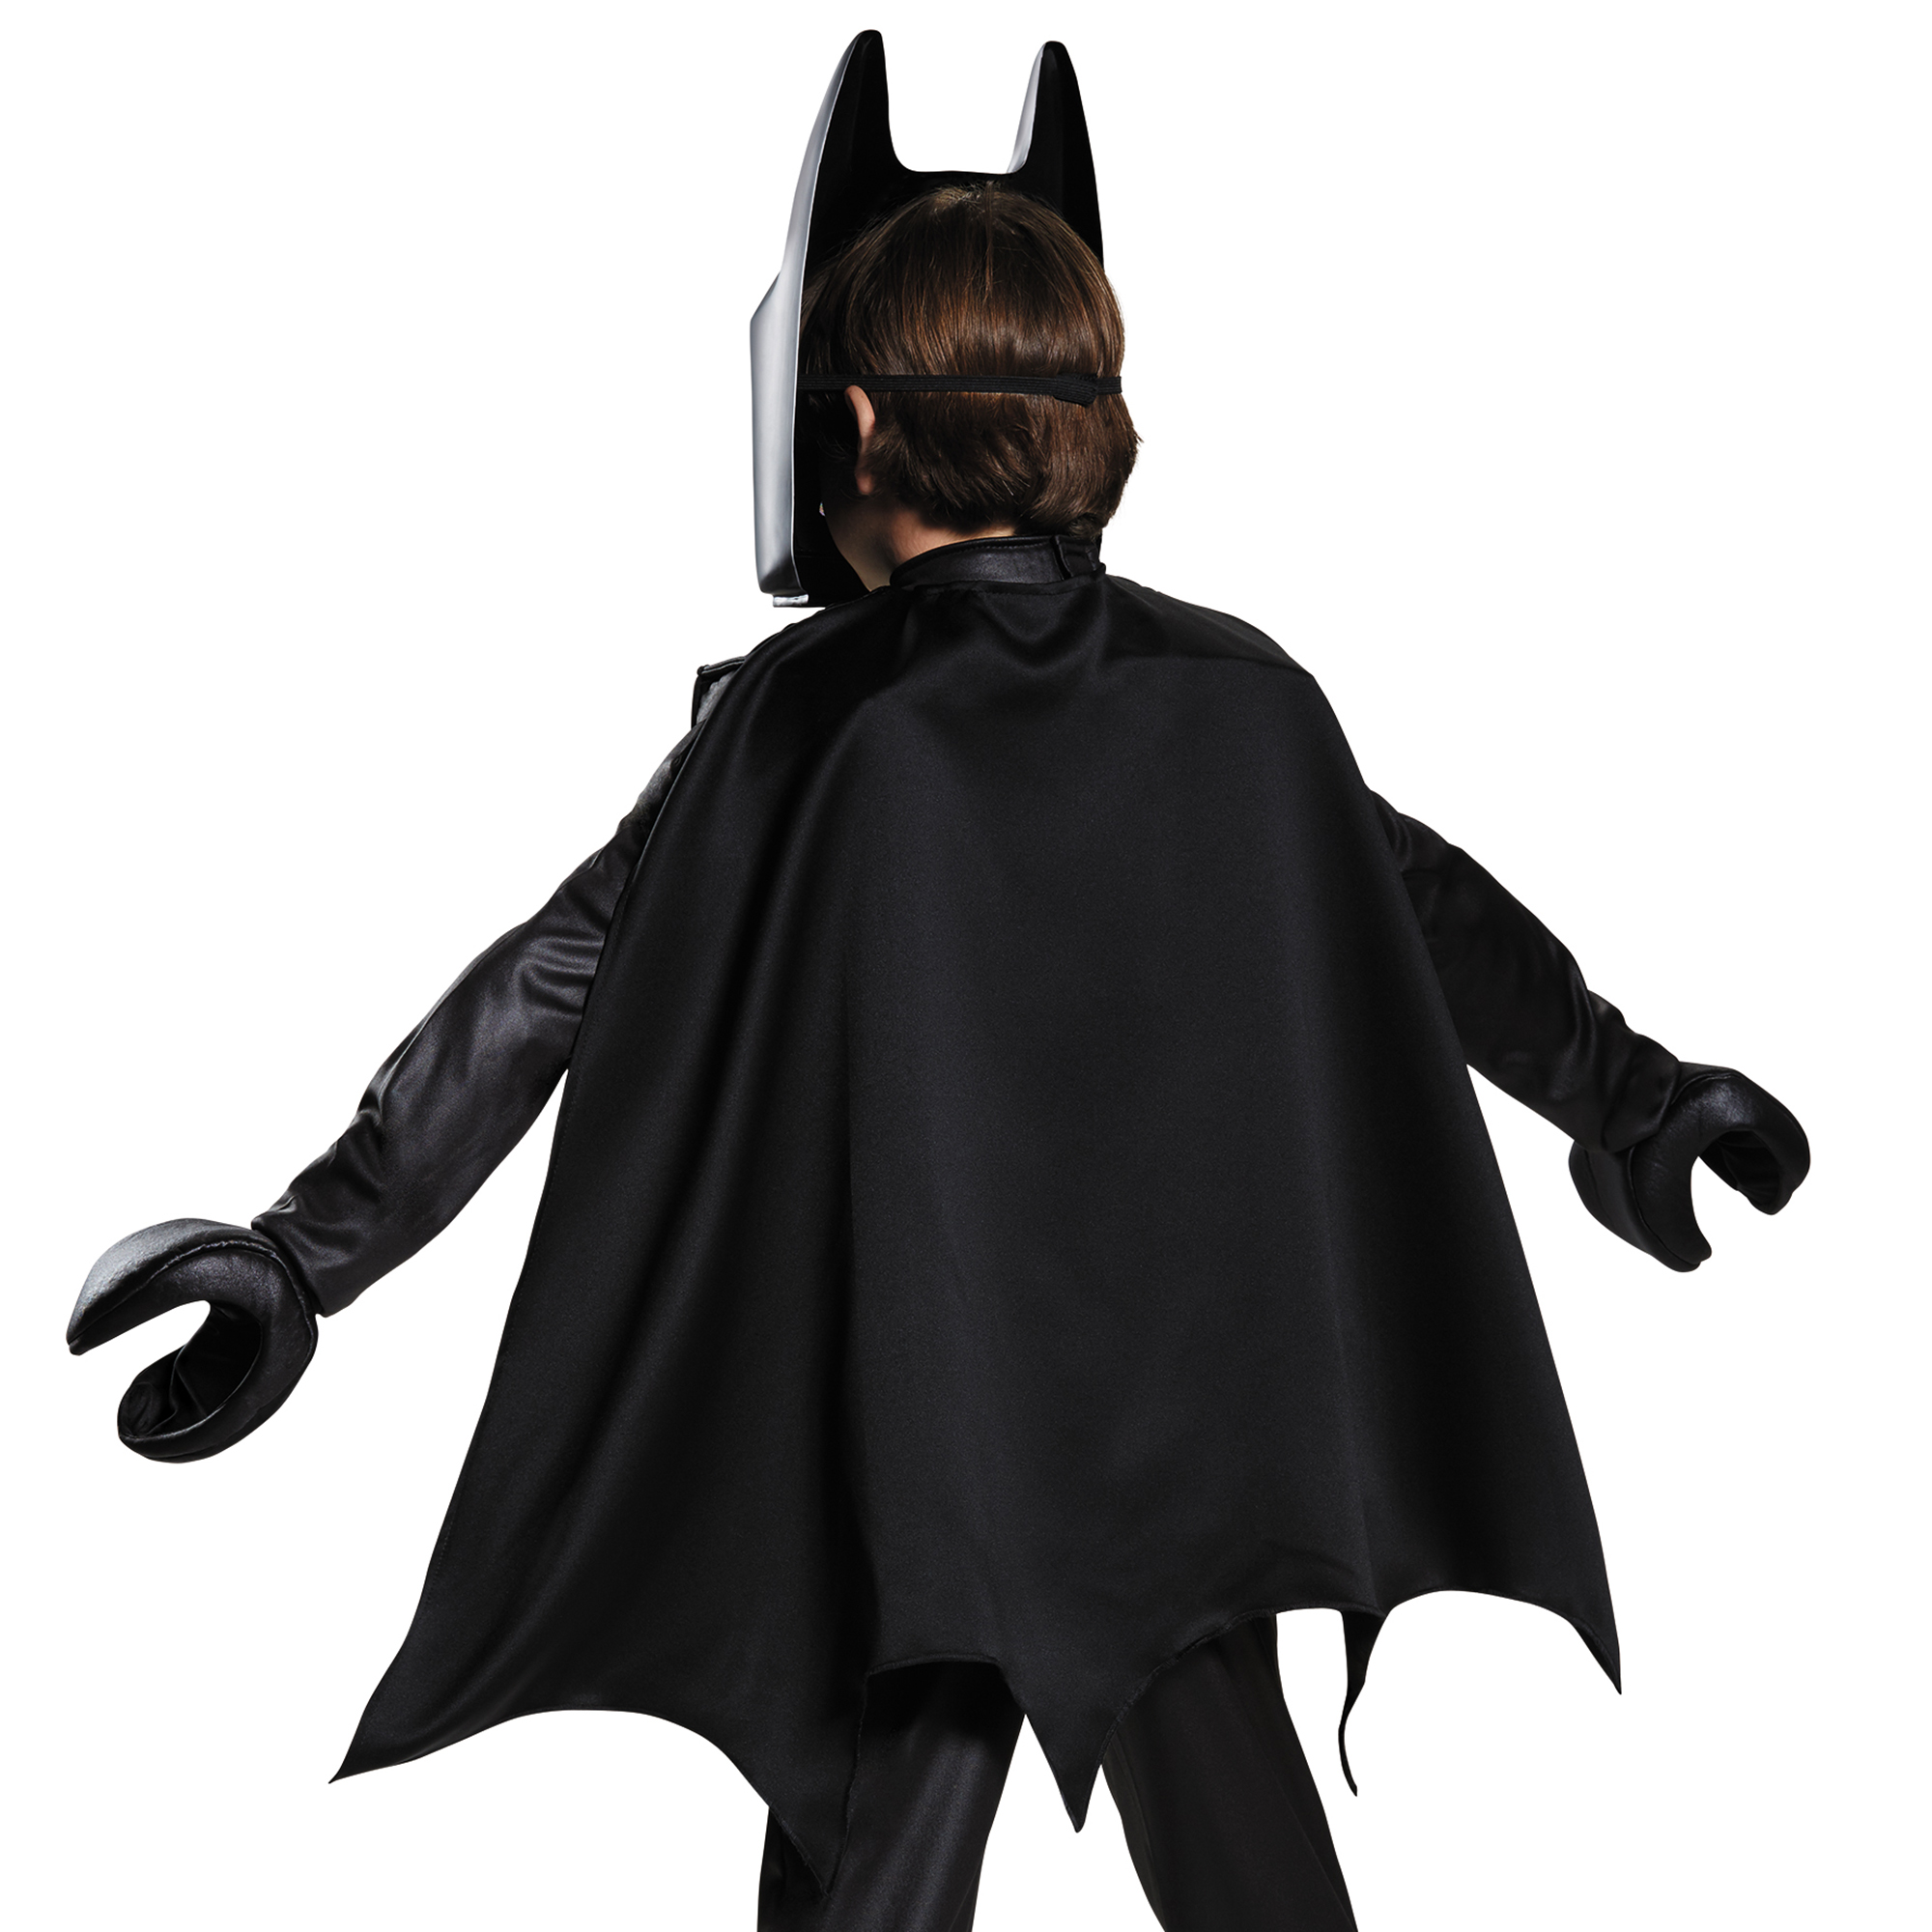 Lego Batman Movie Batgirl Prestige Girls Costume